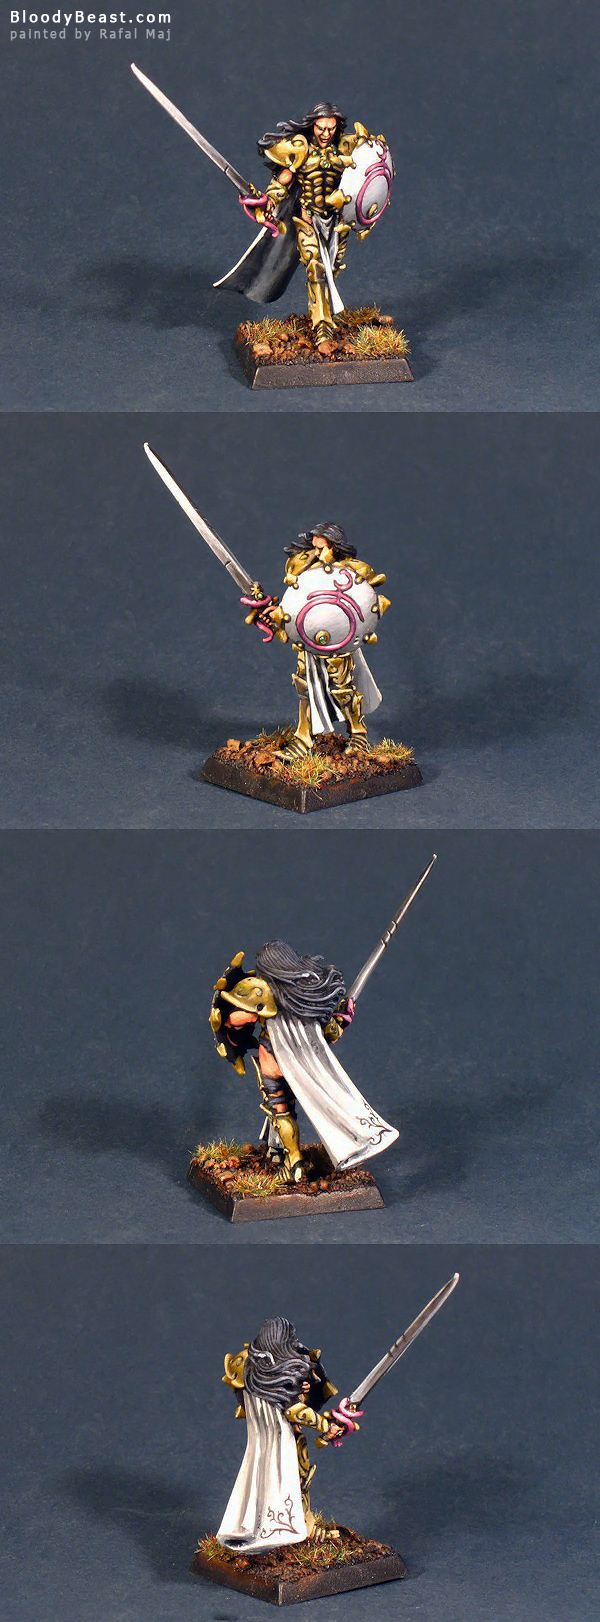 Sigvald the Magnificent painted by Rafal Maj (BloodyBeast.com)